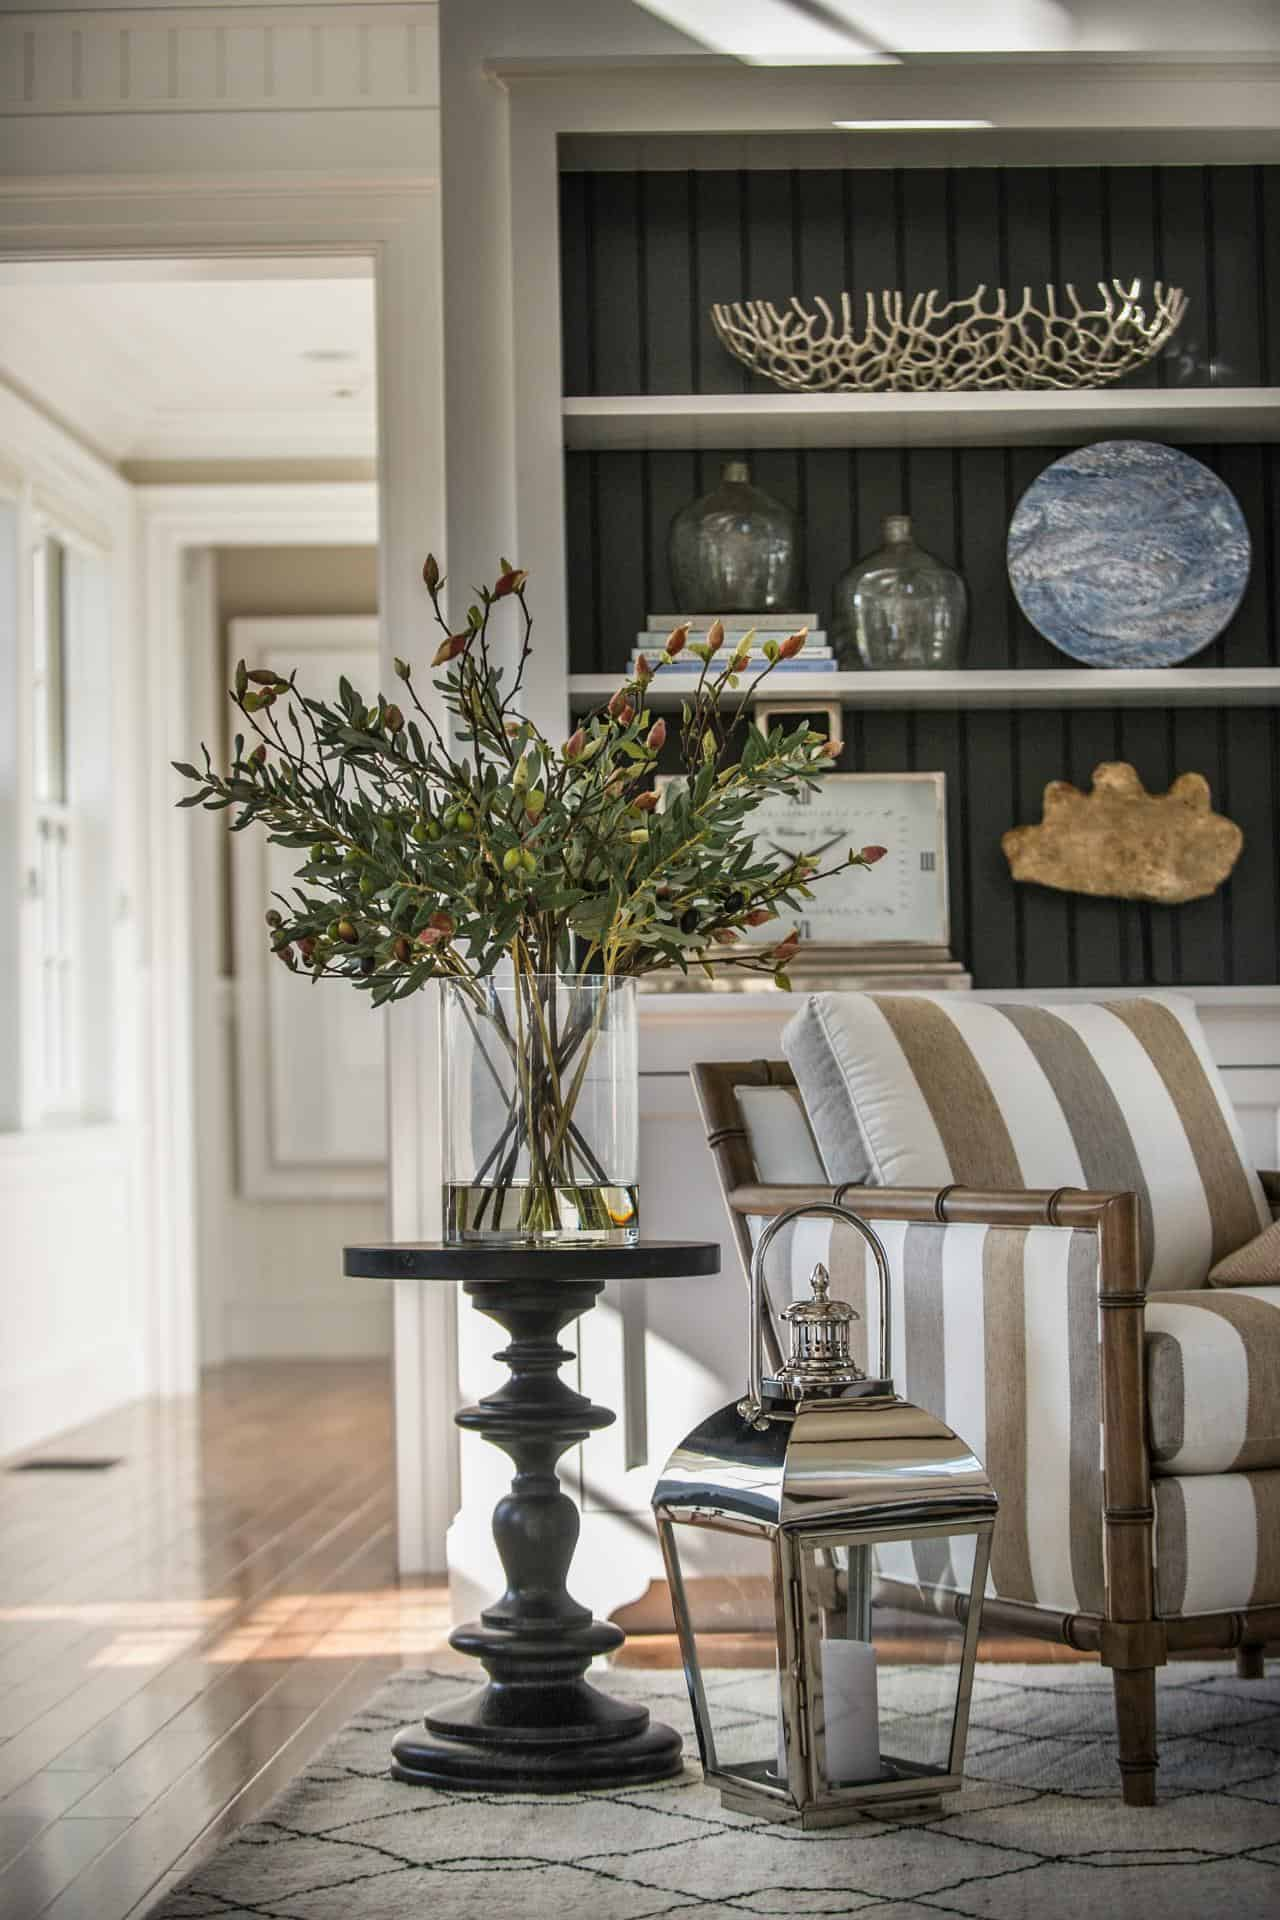 10 simple decorating ideas from the hgtv dream home thistlewood farm - Hgtv home decorating ideas ...